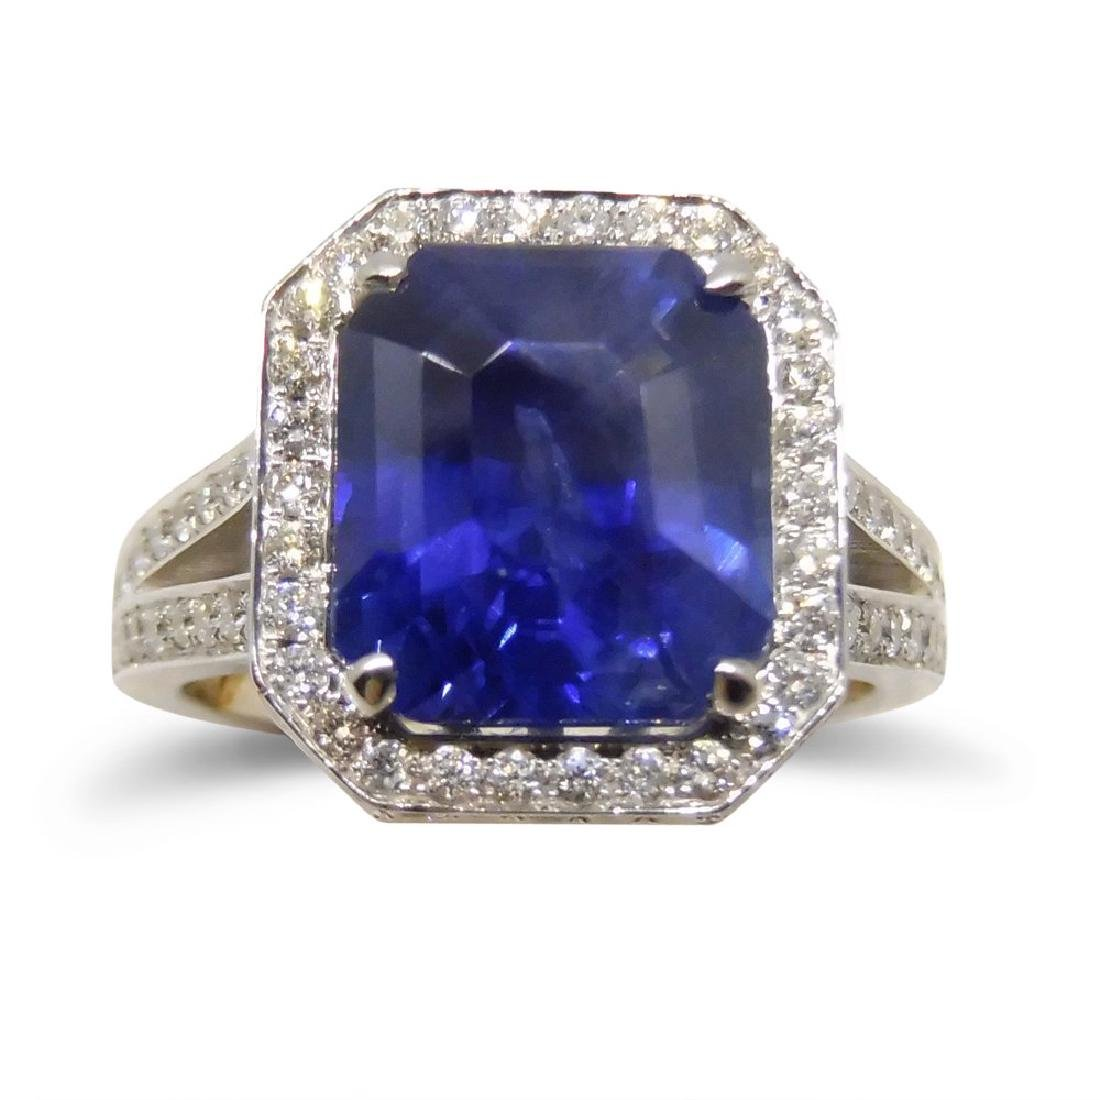 18K White Gold Unheated Sapphire Ring, 5.75ctw - 4